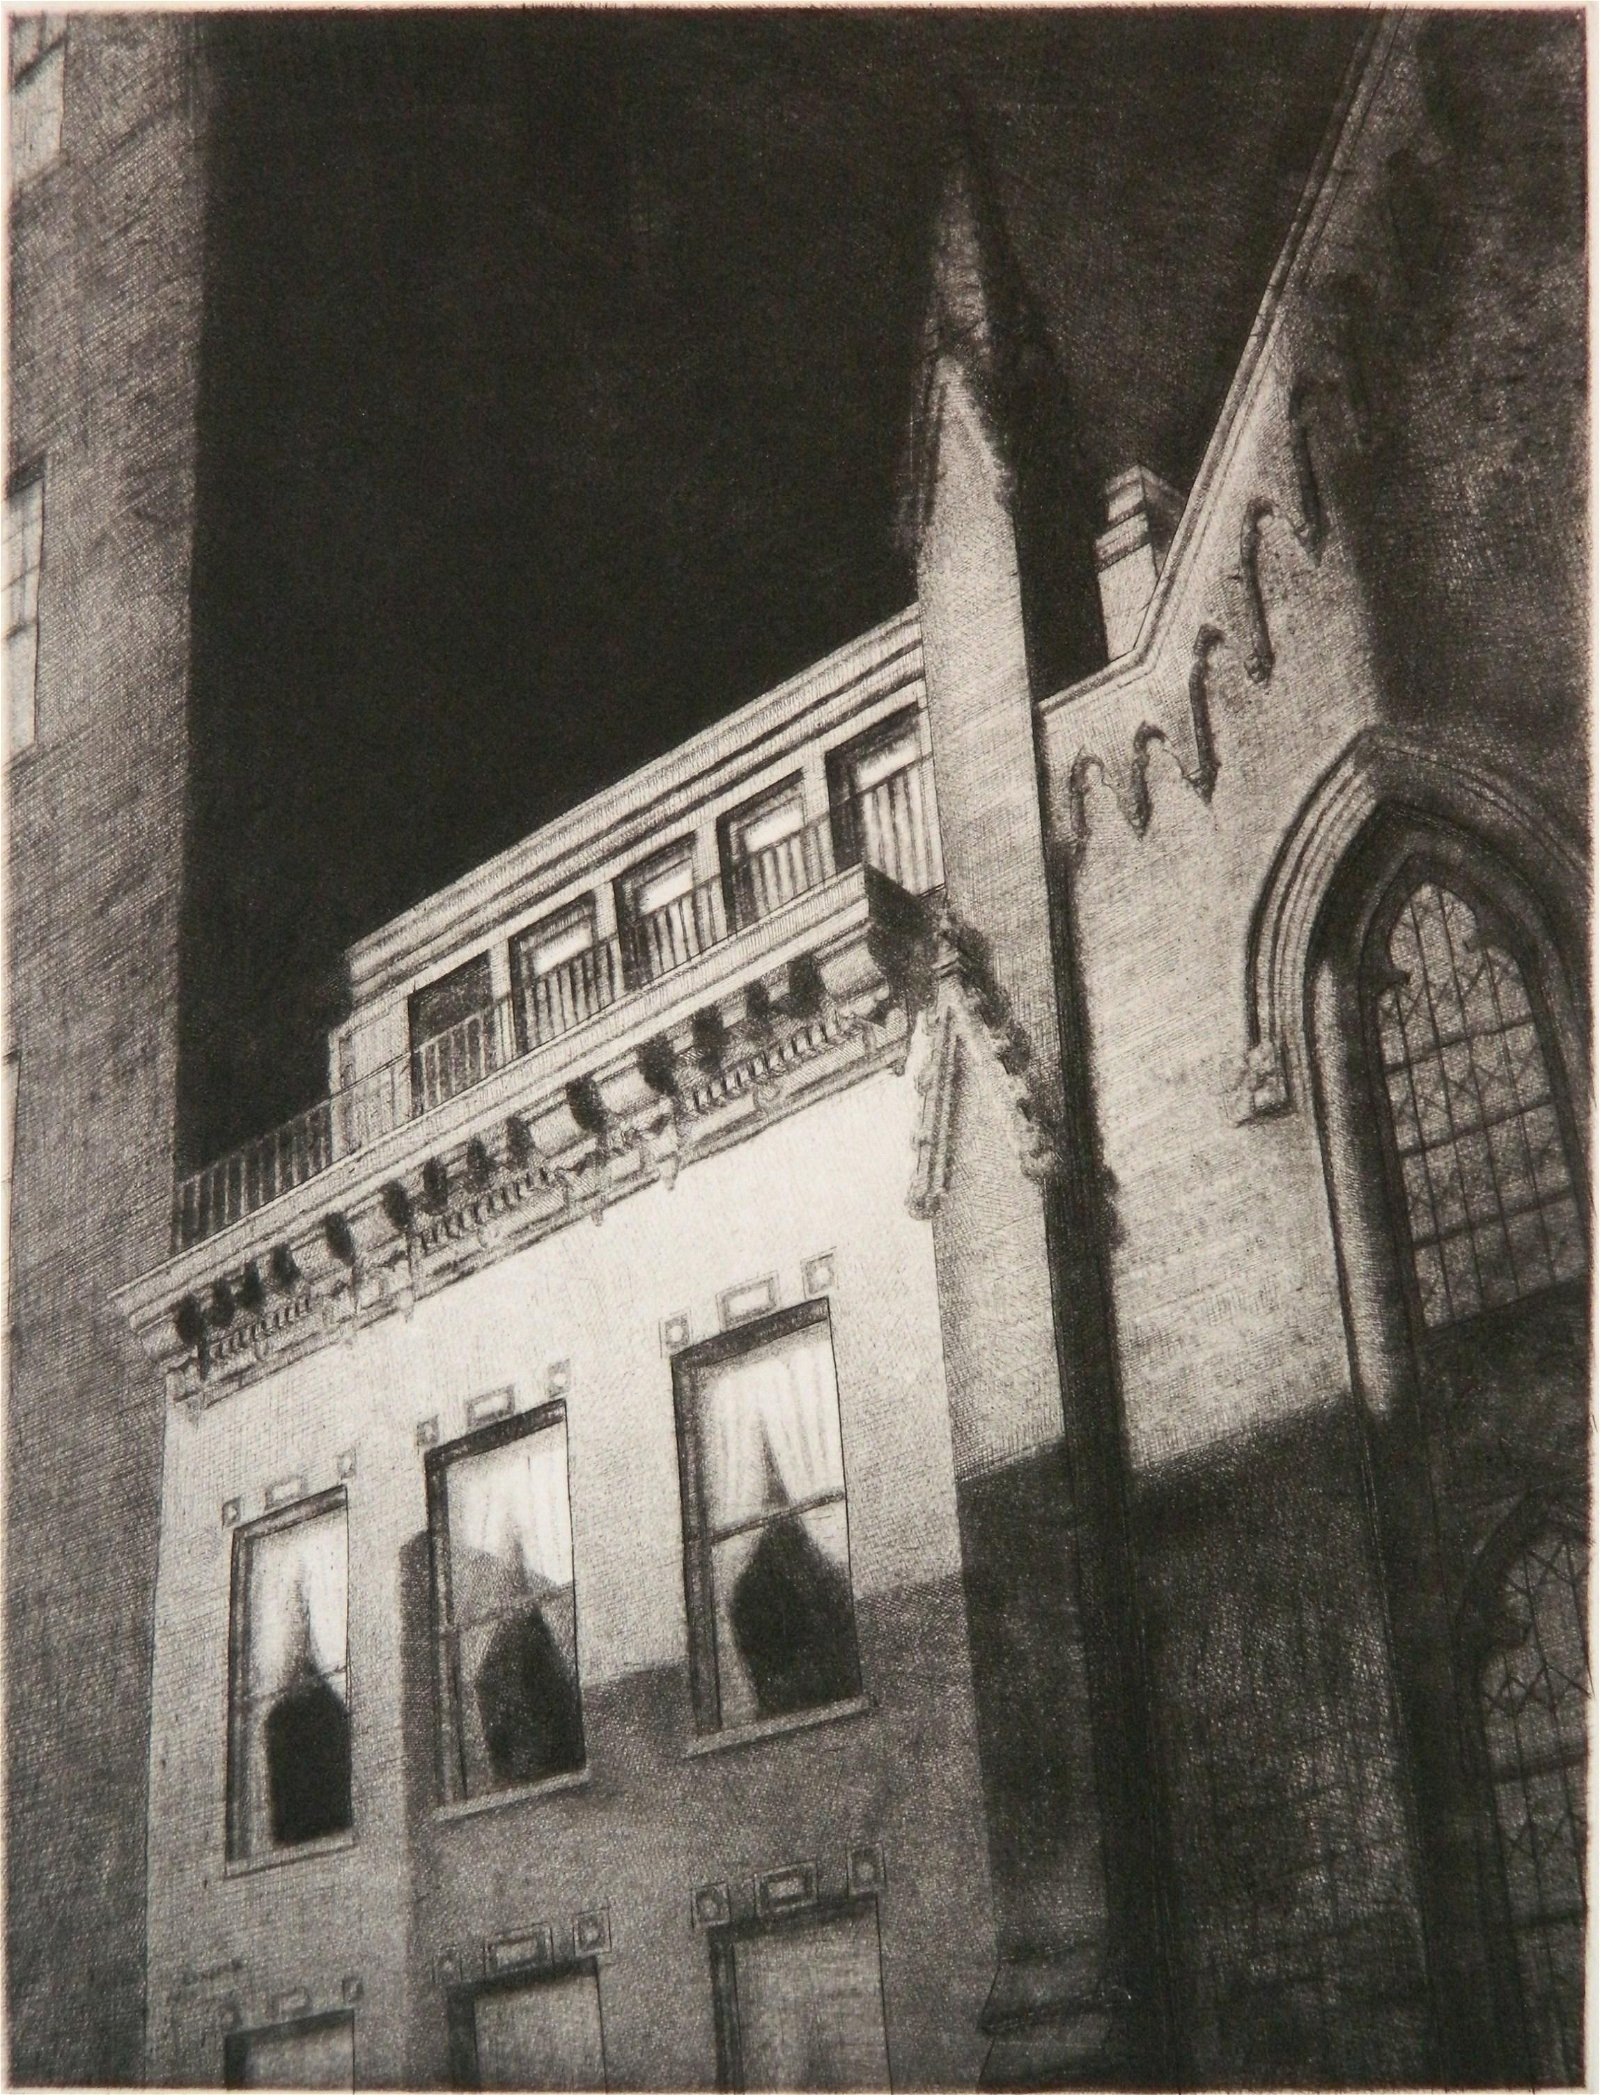 Armin Landeck etching and drypoint